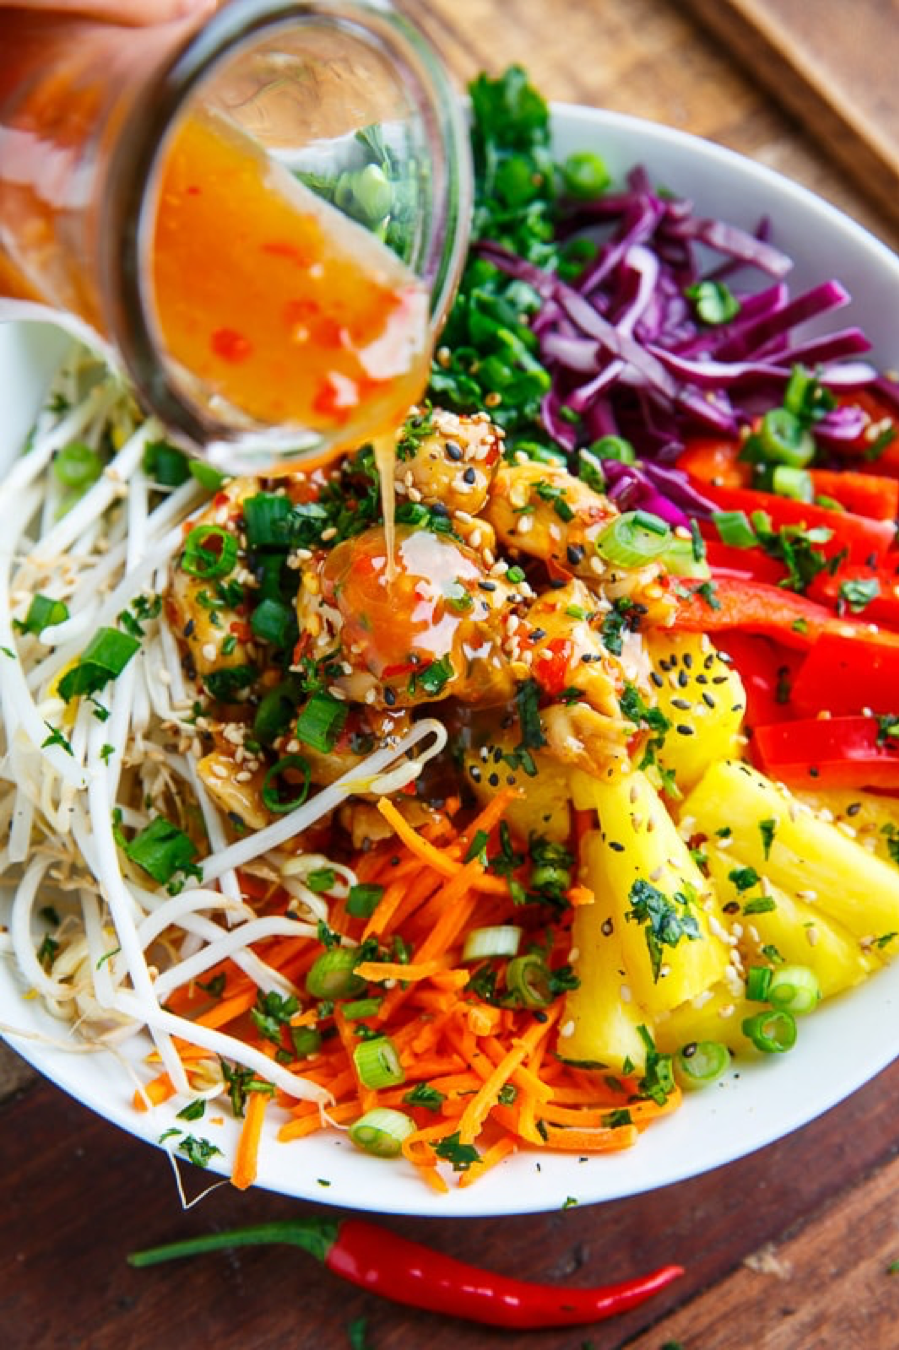 THAI SWEET CHILI CHICKEN BUDDAH BOWLS